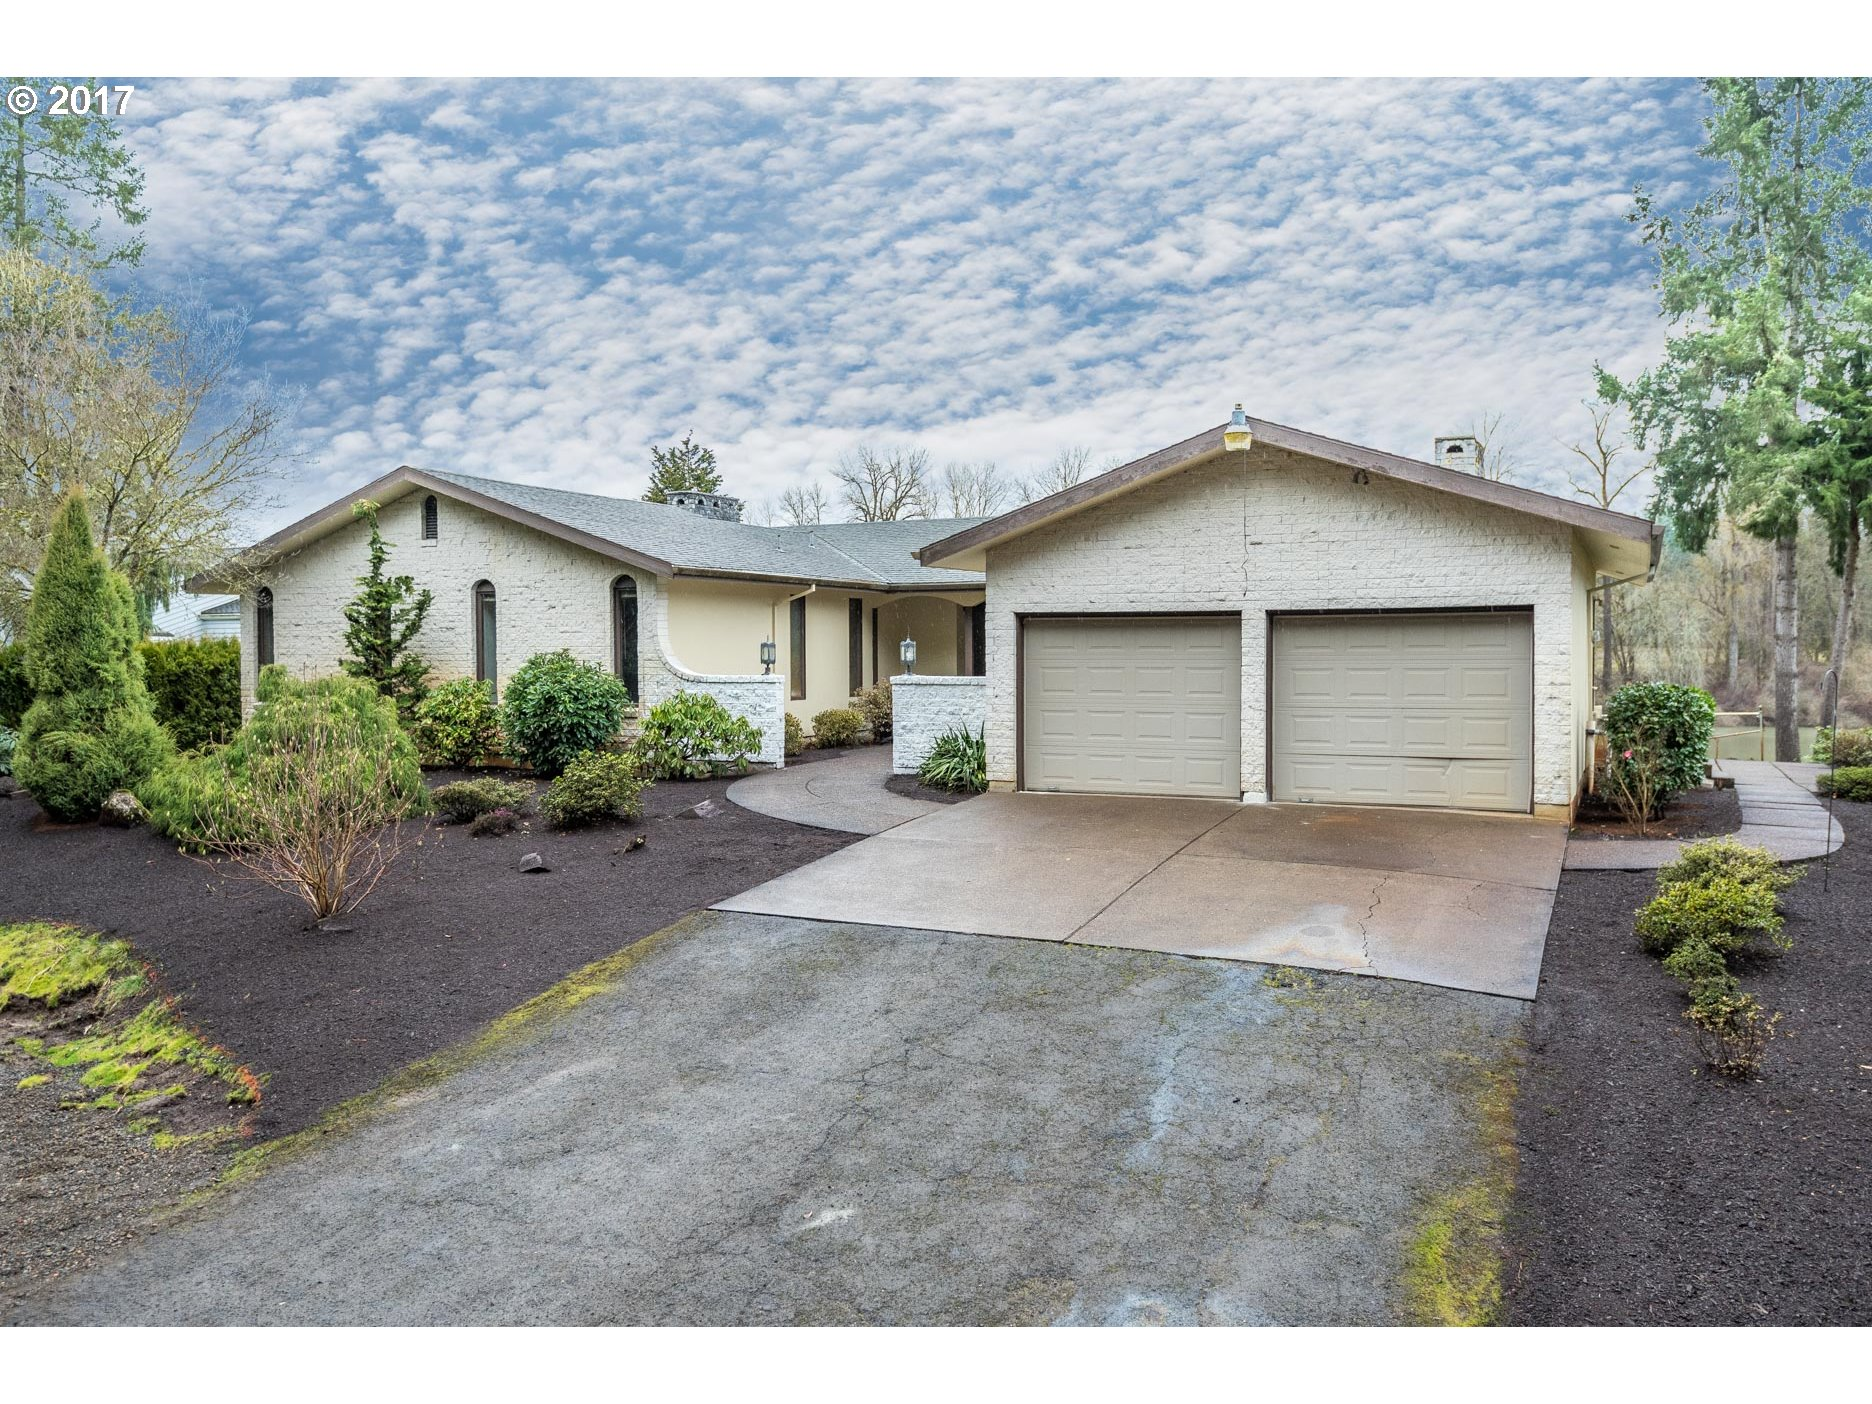 540 NW RIVERPARK PL, Canby, OR 97013